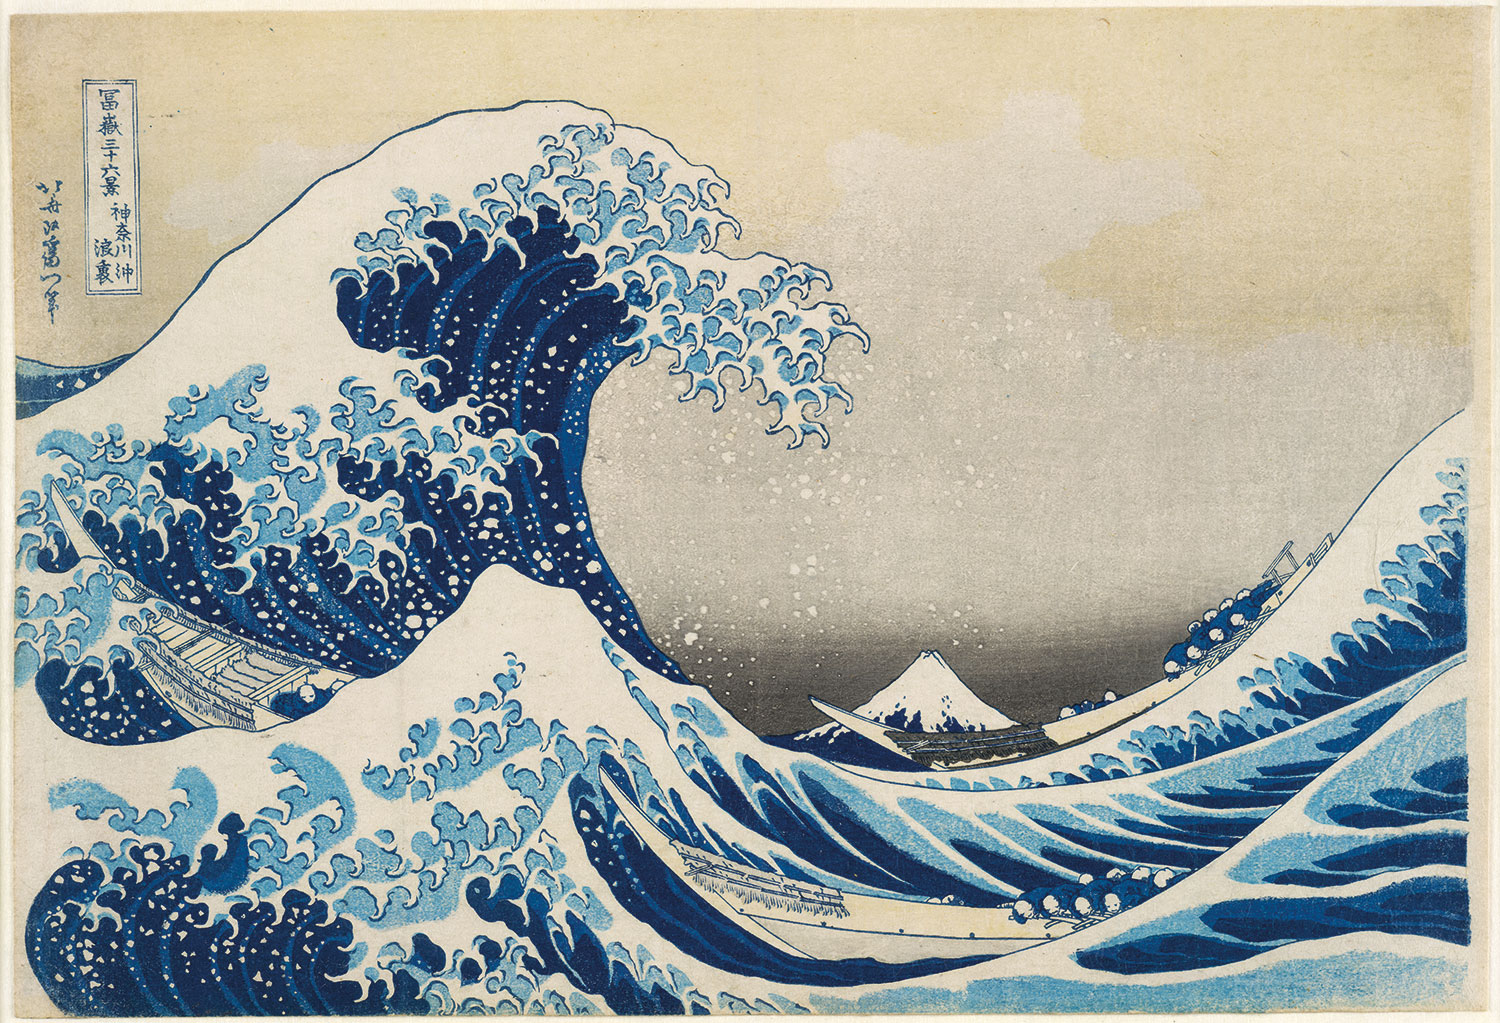 Katsushika Hokusai (1760–1849), Under the Wave off Kanagawa (detail). Colour woodblock print, c. 1831. Acquired with the assistance of the Art Fund.